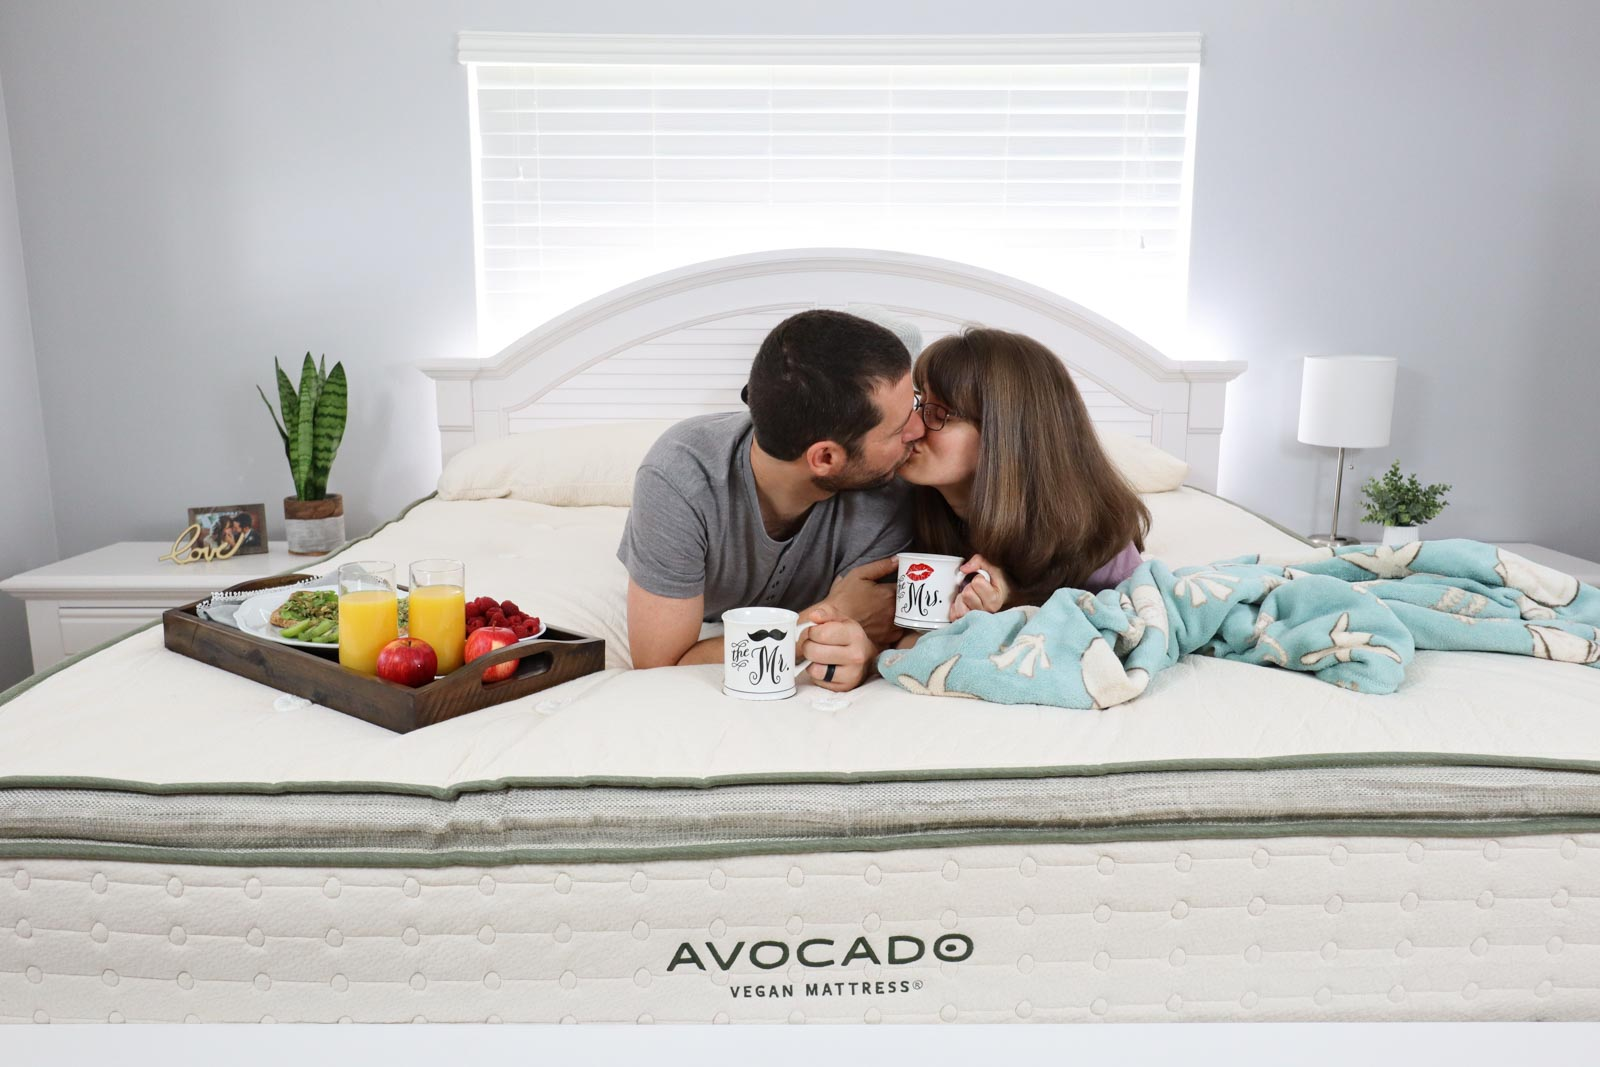 A man and woman kissing on top of an Avocado vegan mattress in a bedroom.